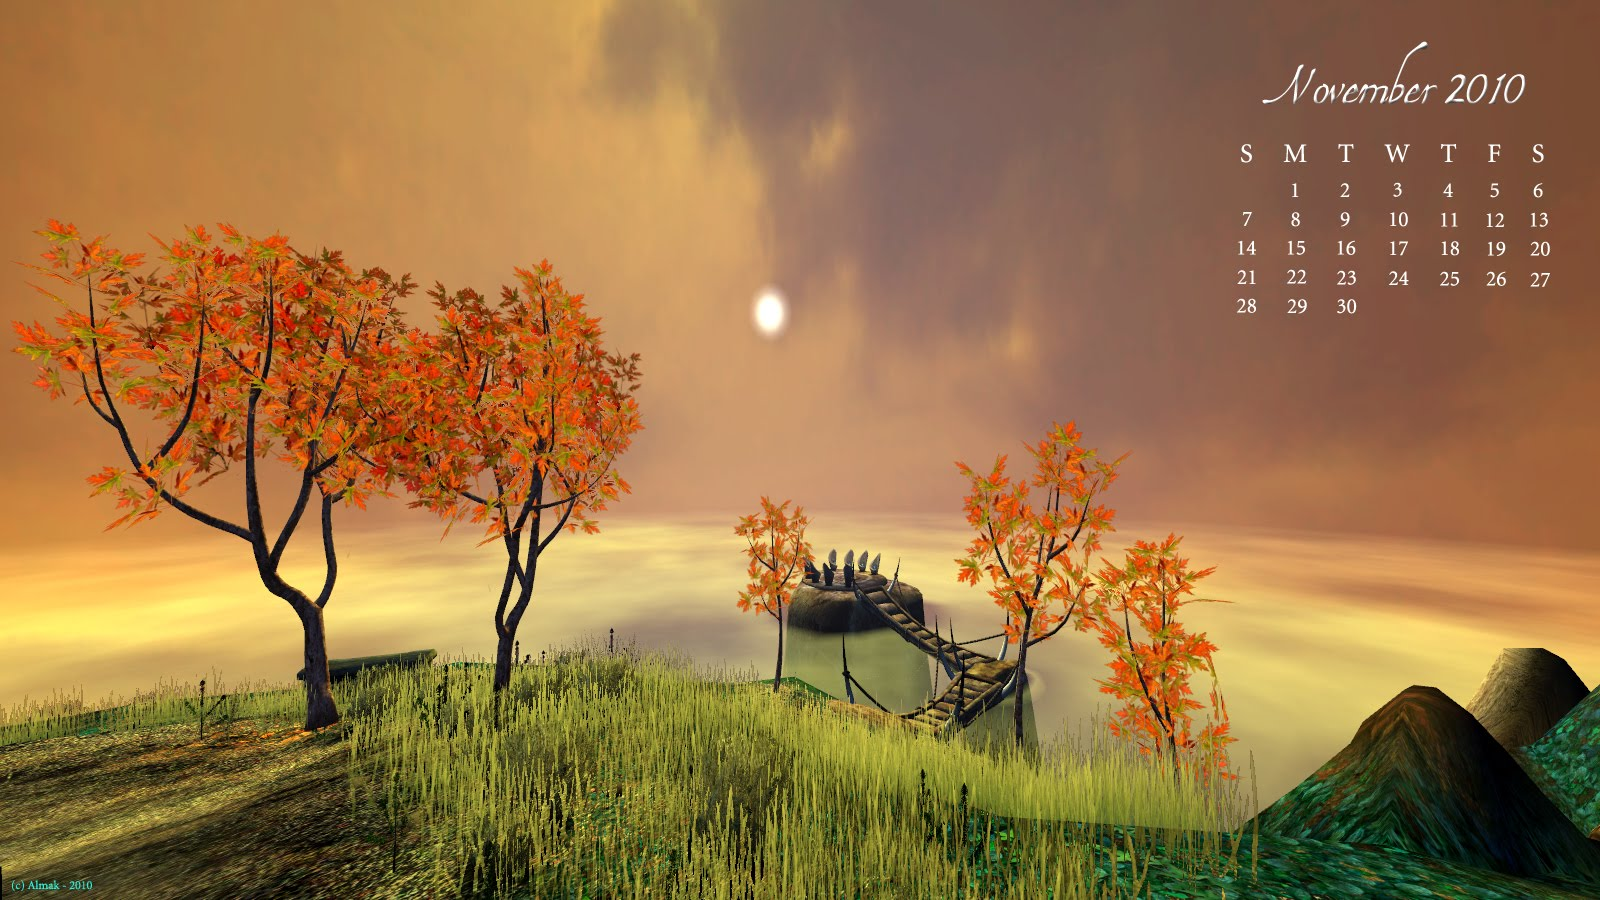 Myst Related Downloads And Commentaries  November 2010